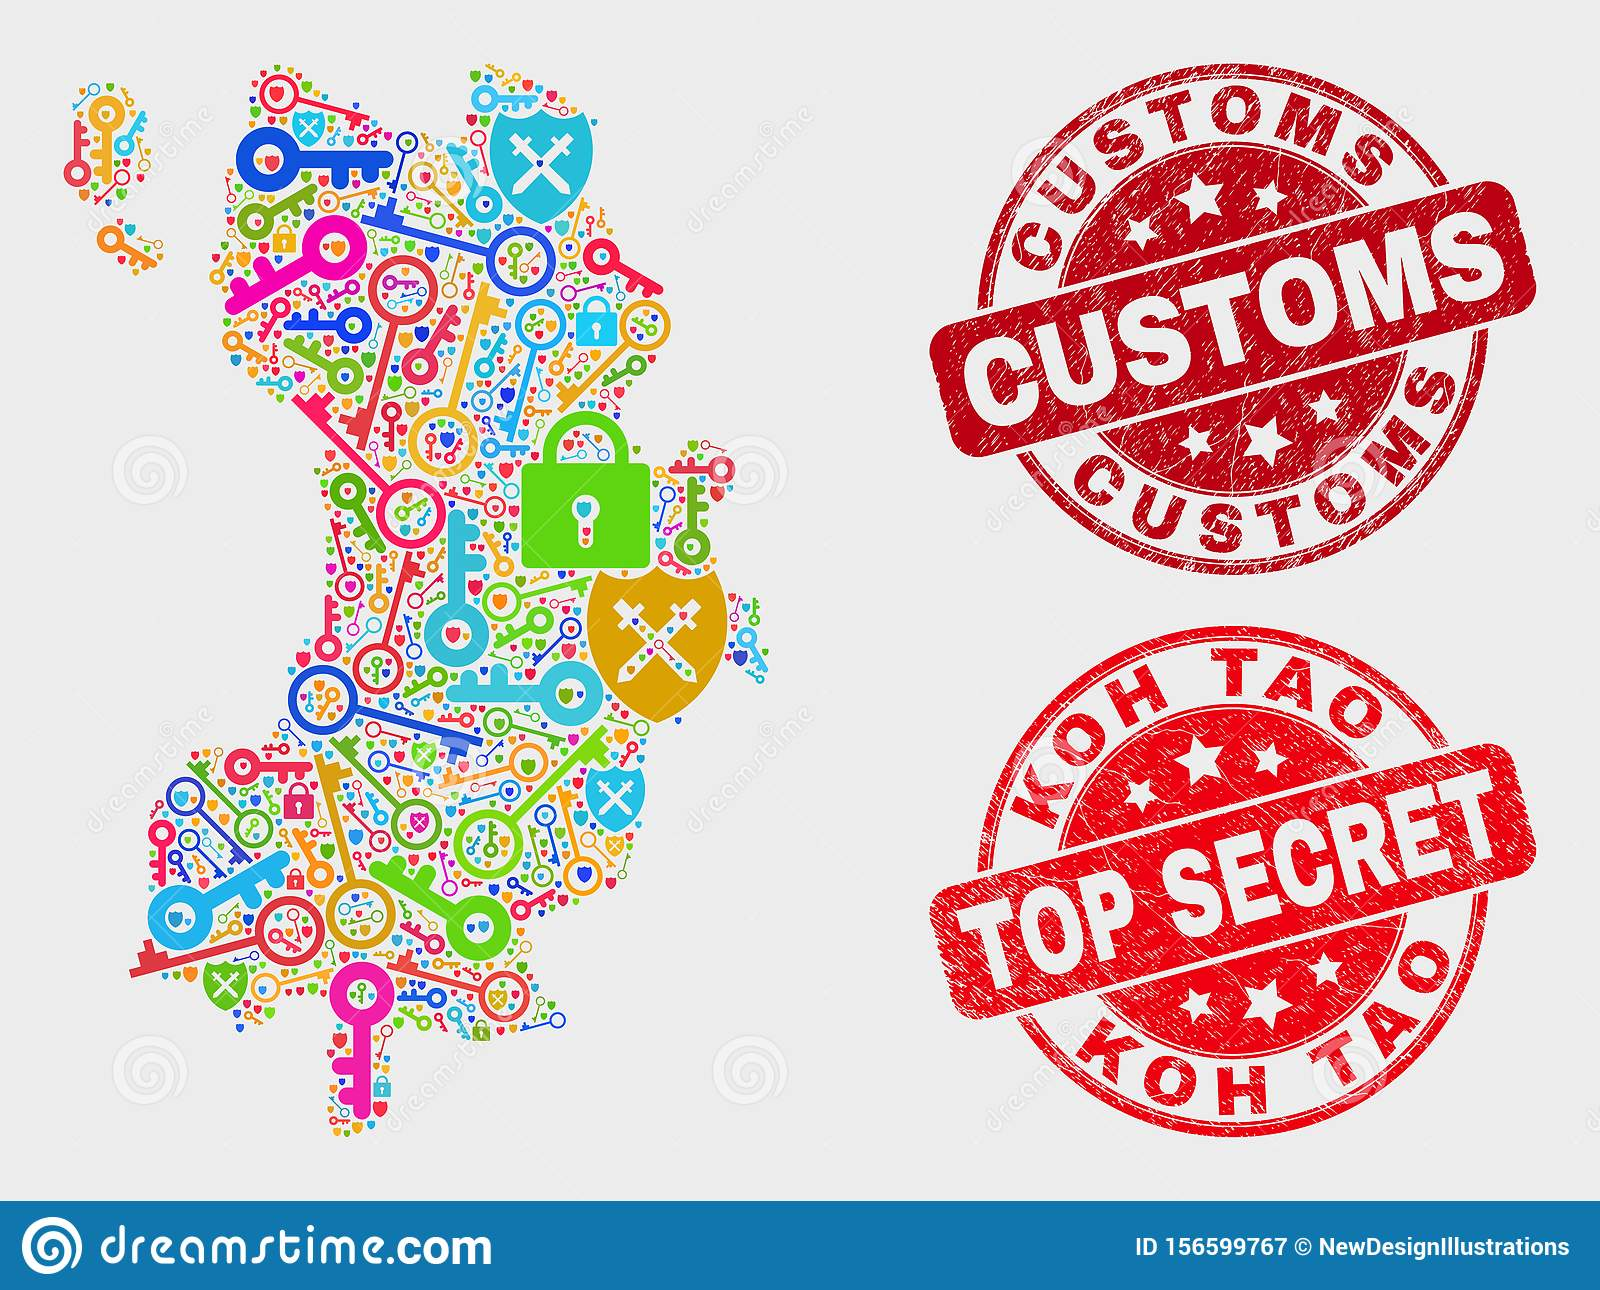 Collage Of Key Koh Tao Map And Grunge Customs Watermark Stock Vector Illustration Of Imprint Grunge 156599767